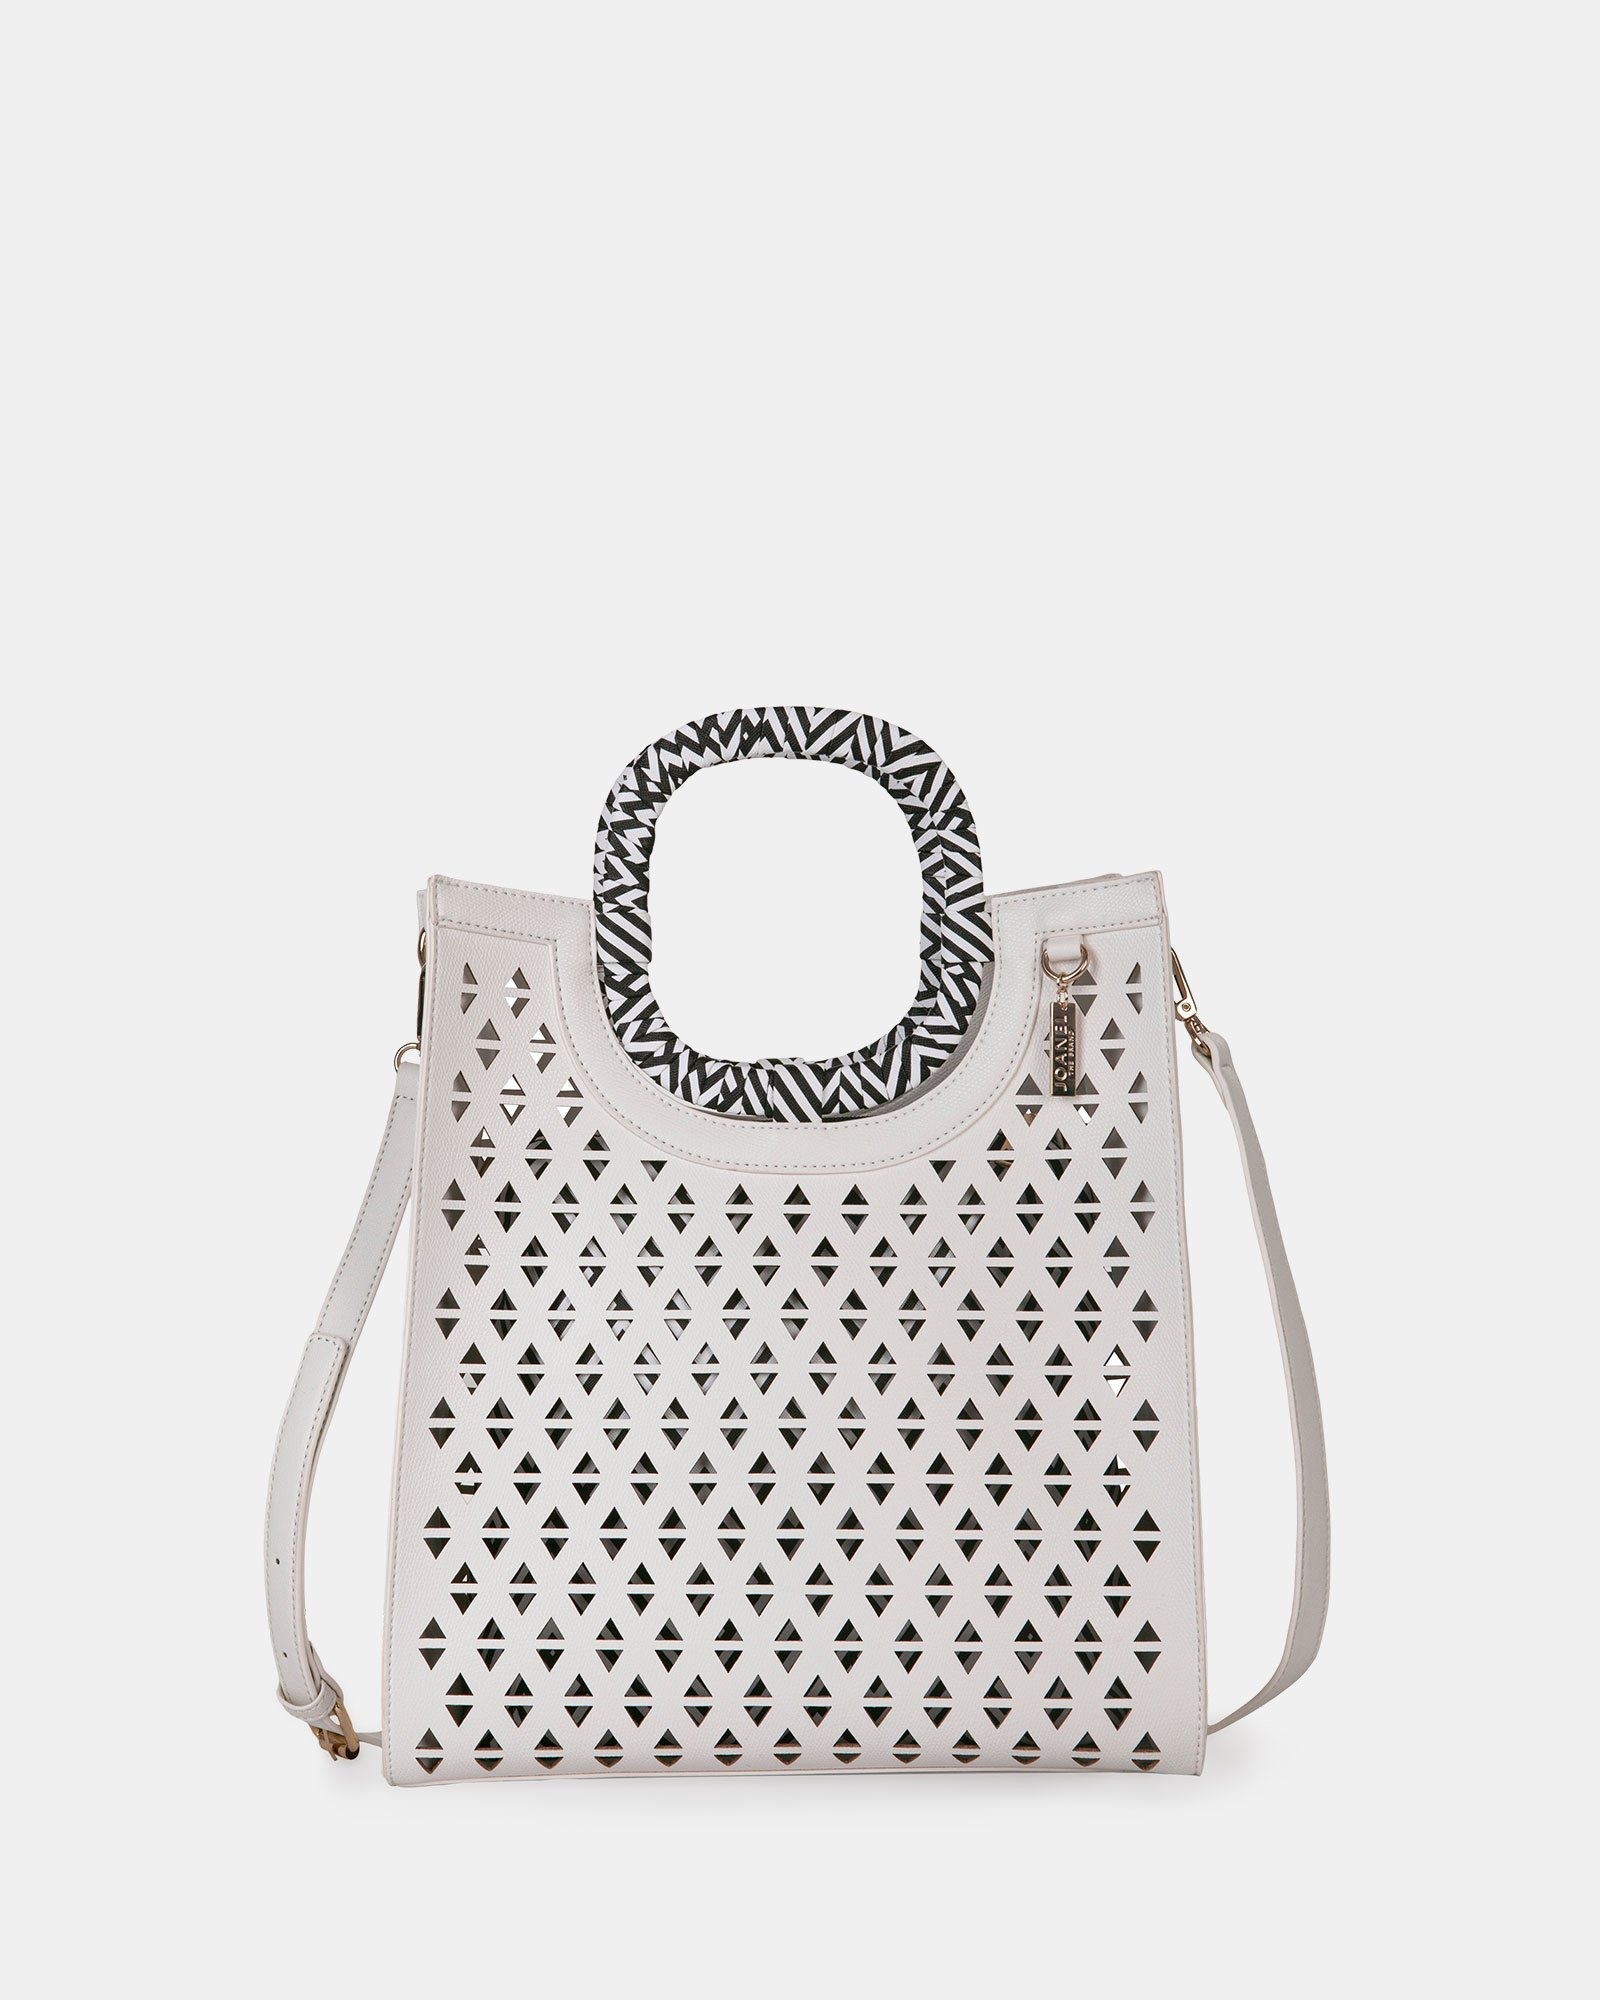 HOLLIE - Handle bag in Vegan Leather - WHITE - Joanel - Zoom